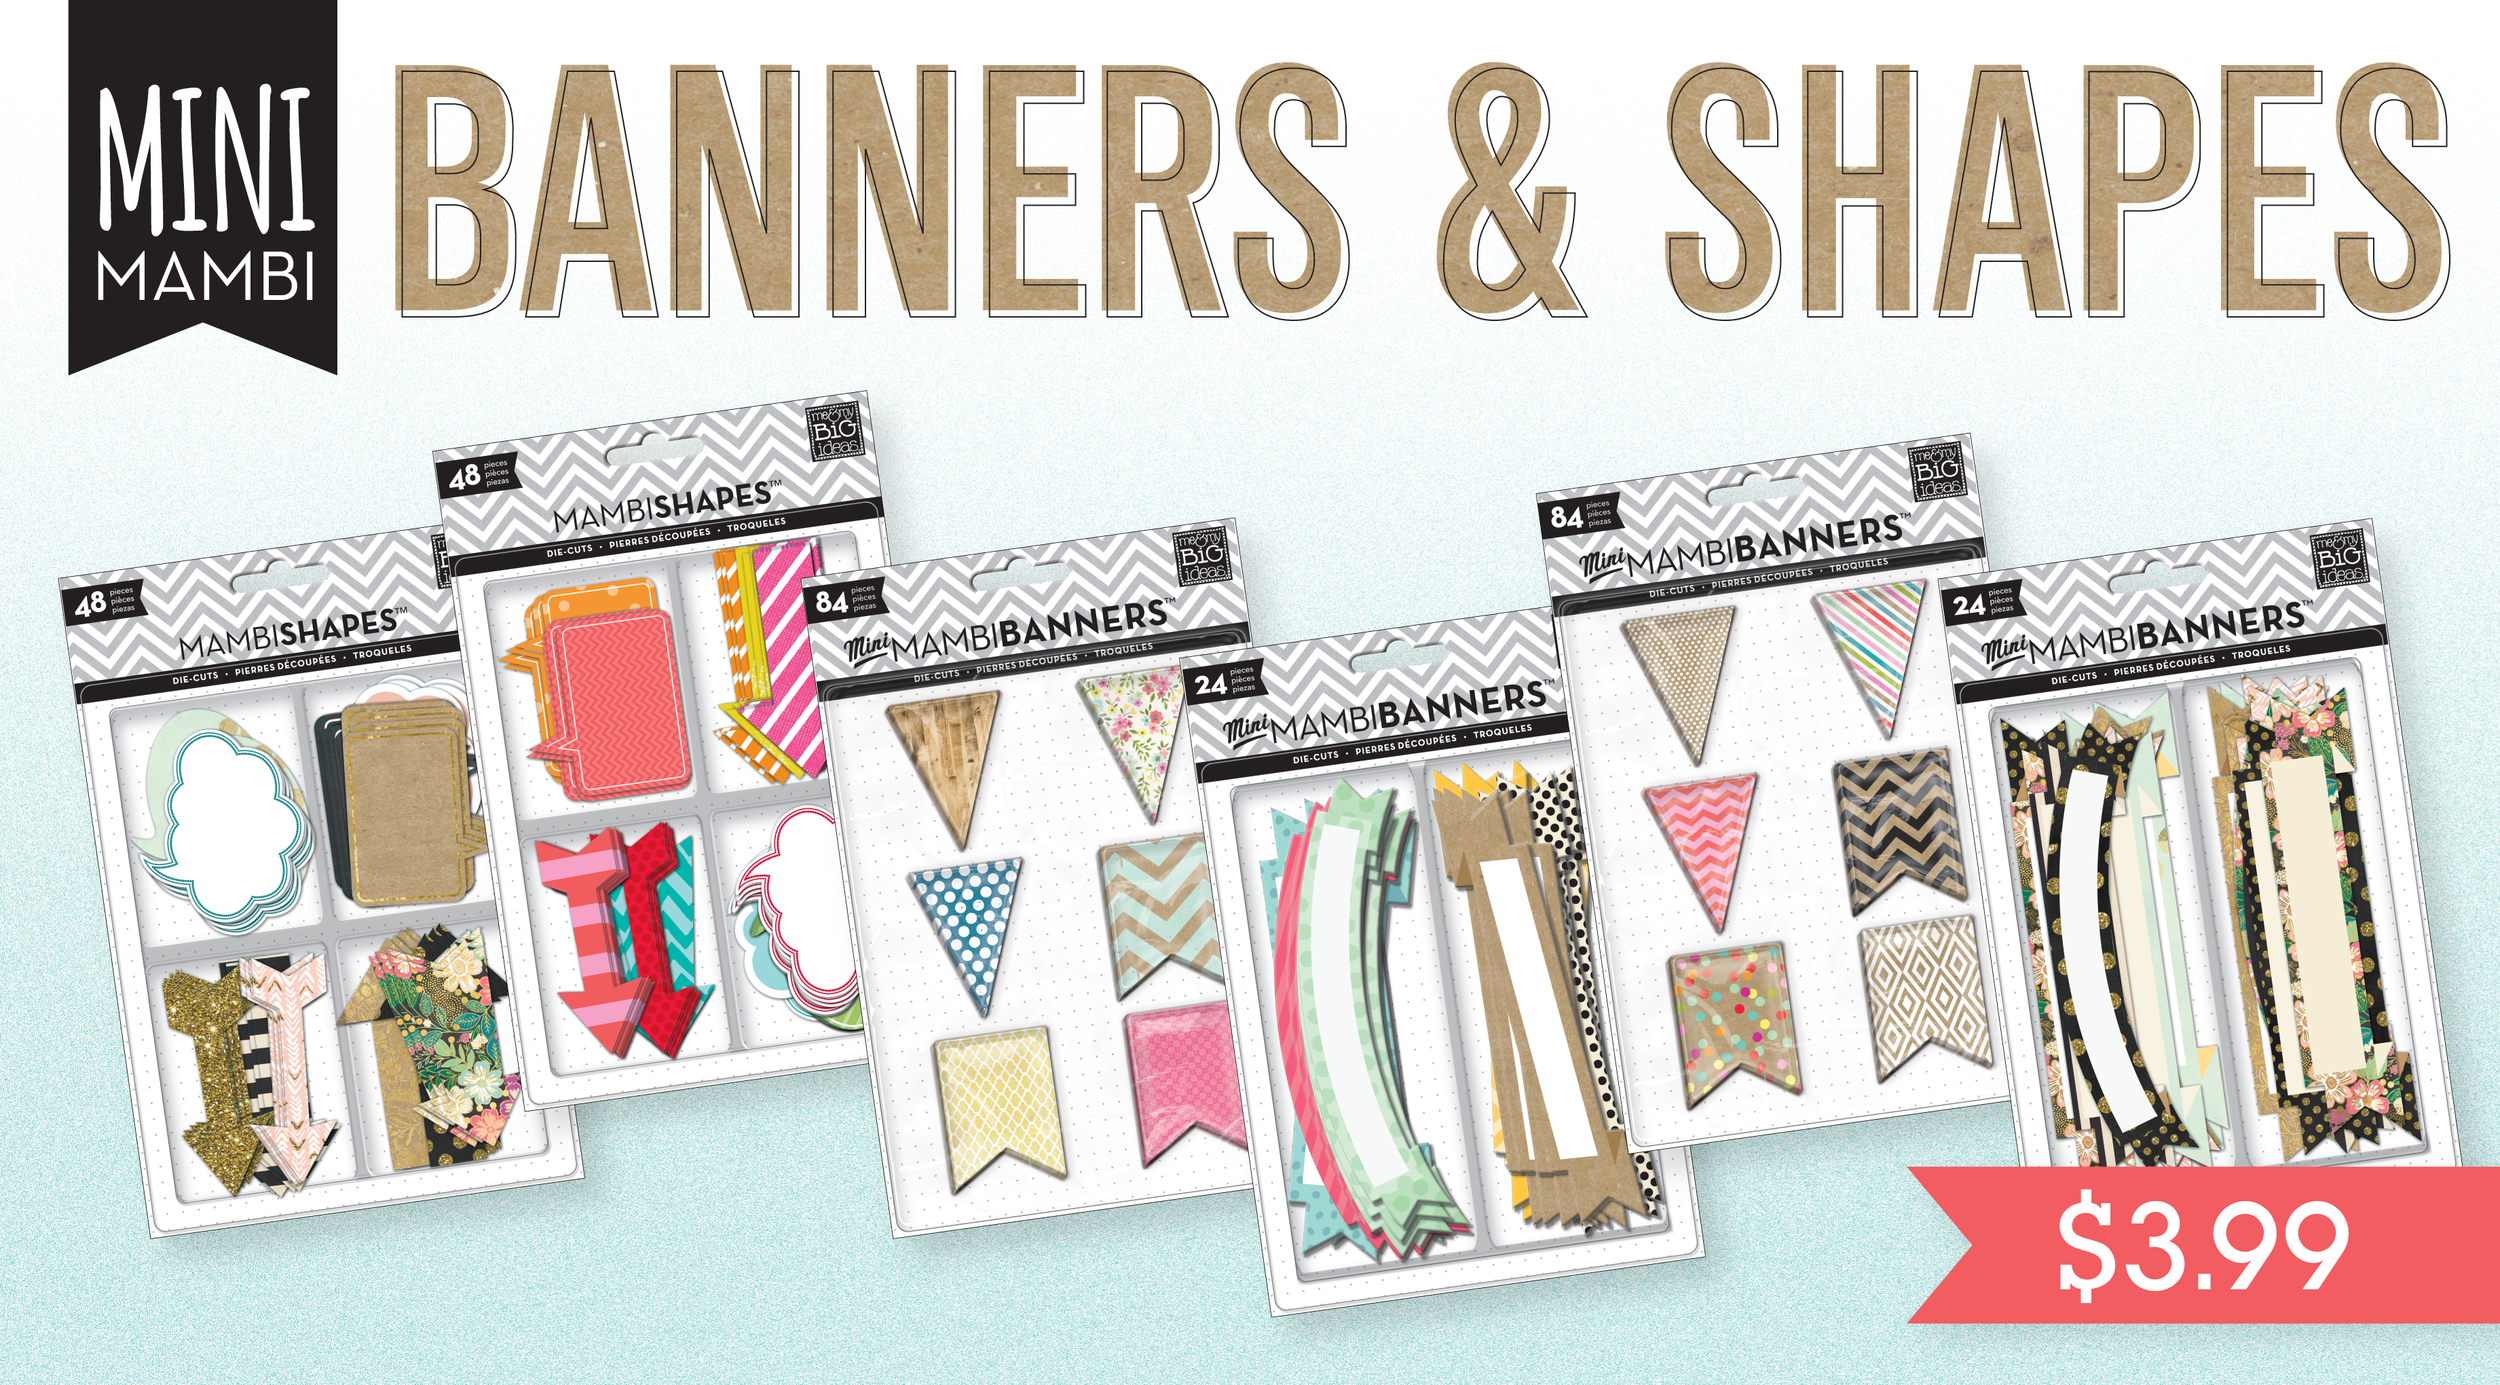 4th of July sale in the mambiSHOP this weekend!  Plus you get a FREE gold sticker pack with your order!  BRAND NEW banners and shapes for crafting and scrapbooking!